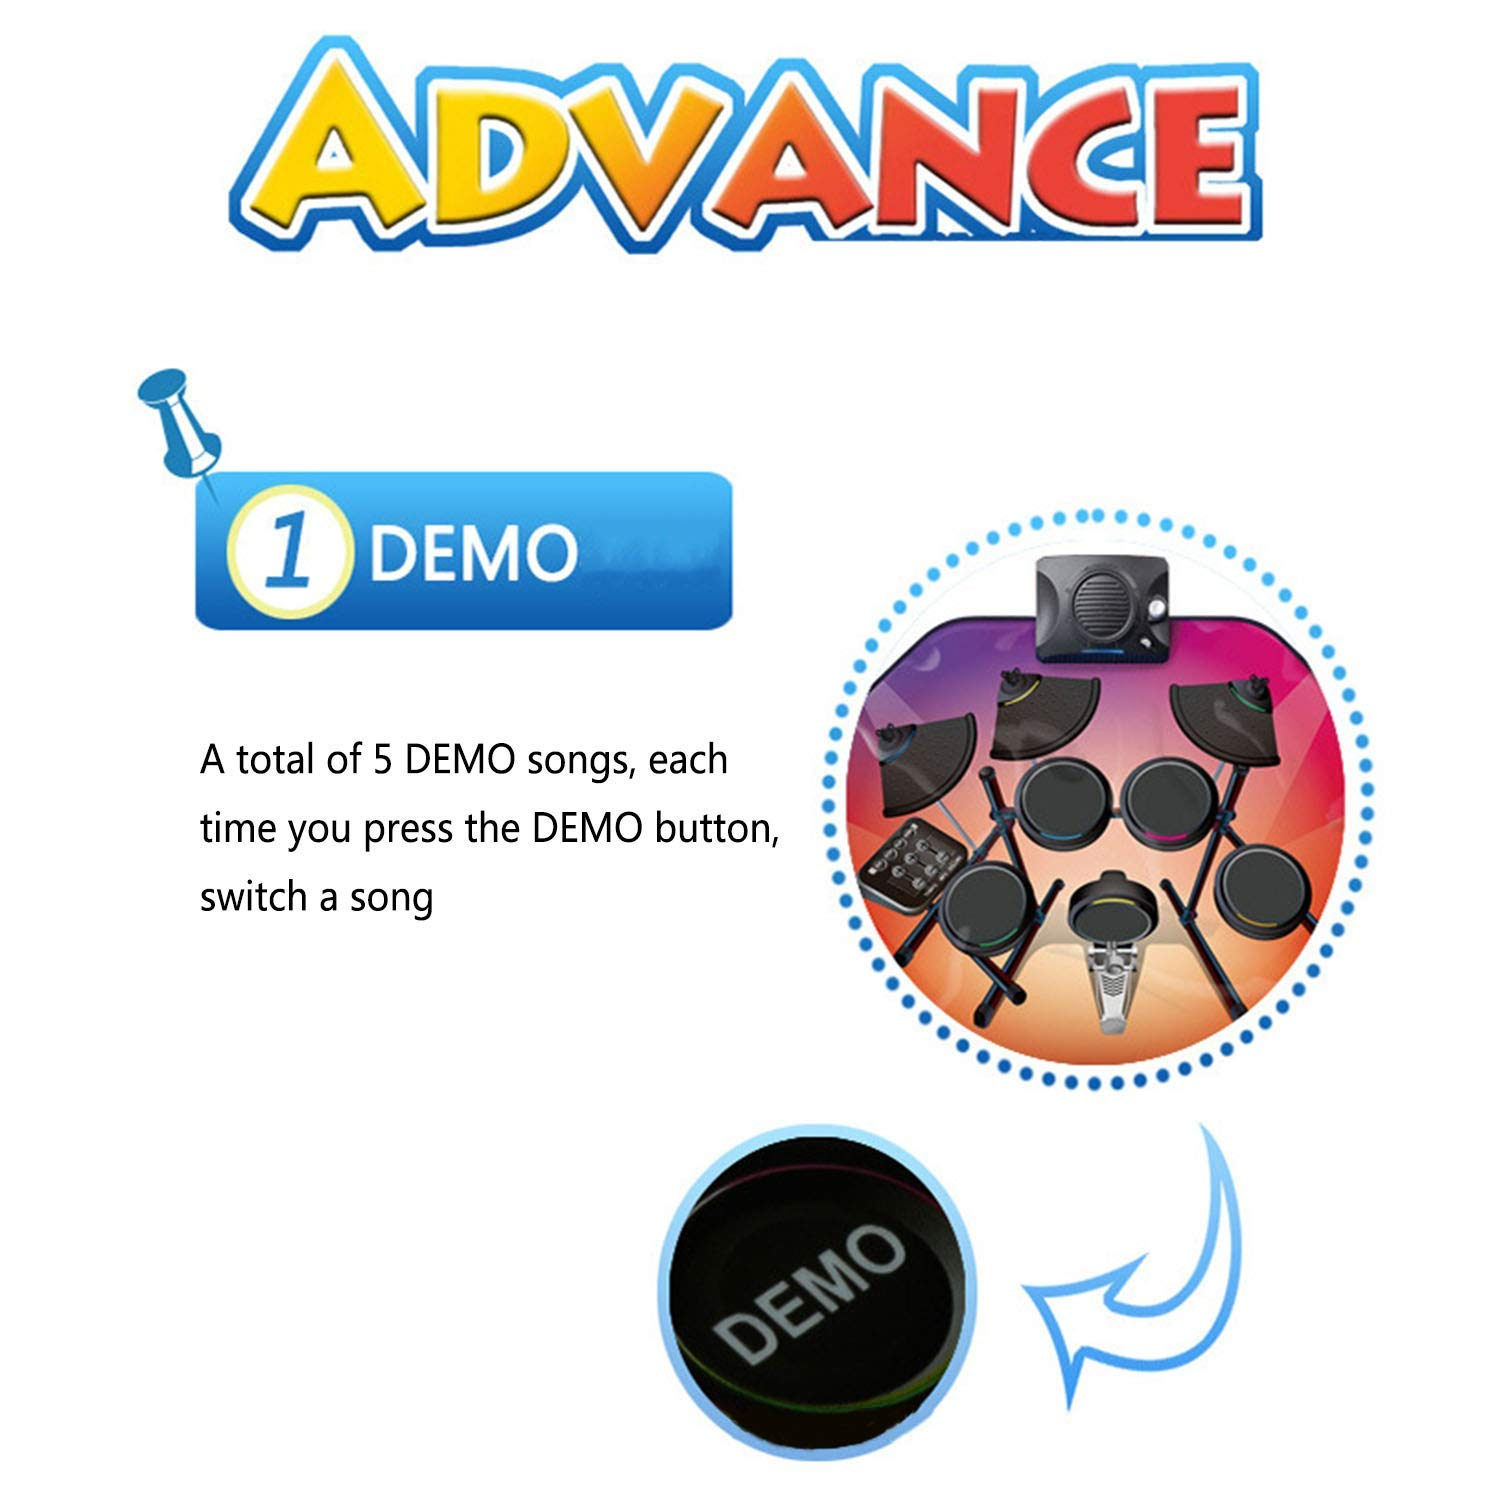 Drum Music Blanket, Jazz Drum Game Pad, Carpet Dance Mat, with Built in Music Tracks, 5 Music, Recording Function, Can Connect to Mobile Phone by ankt777 (Image #3)